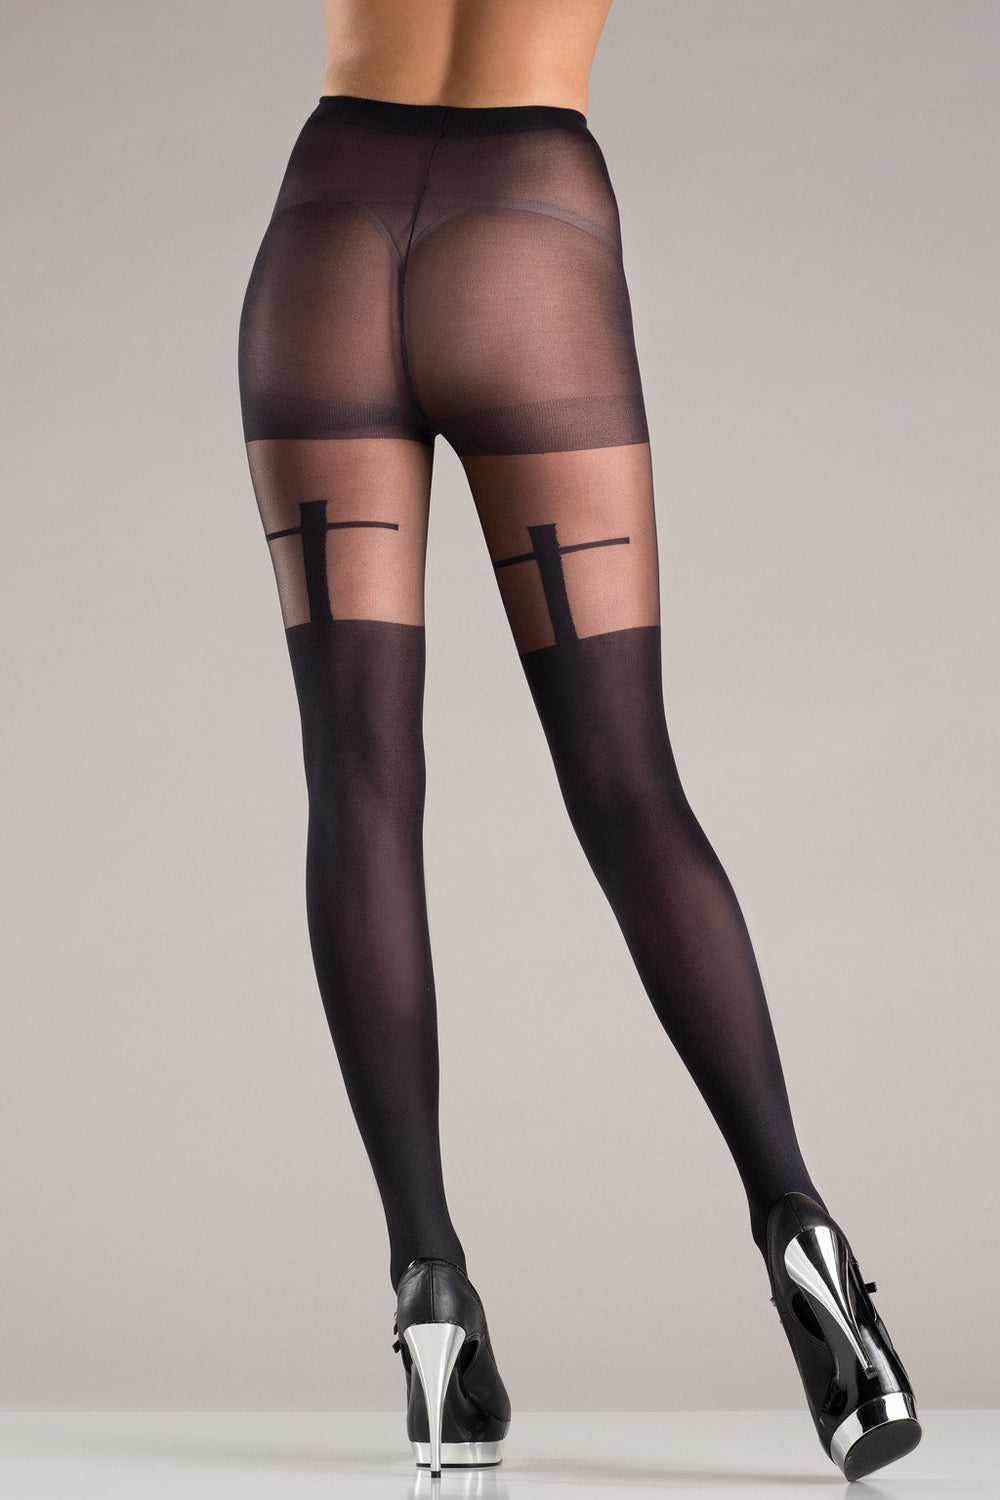 BW724 Cross Design Pantyhose